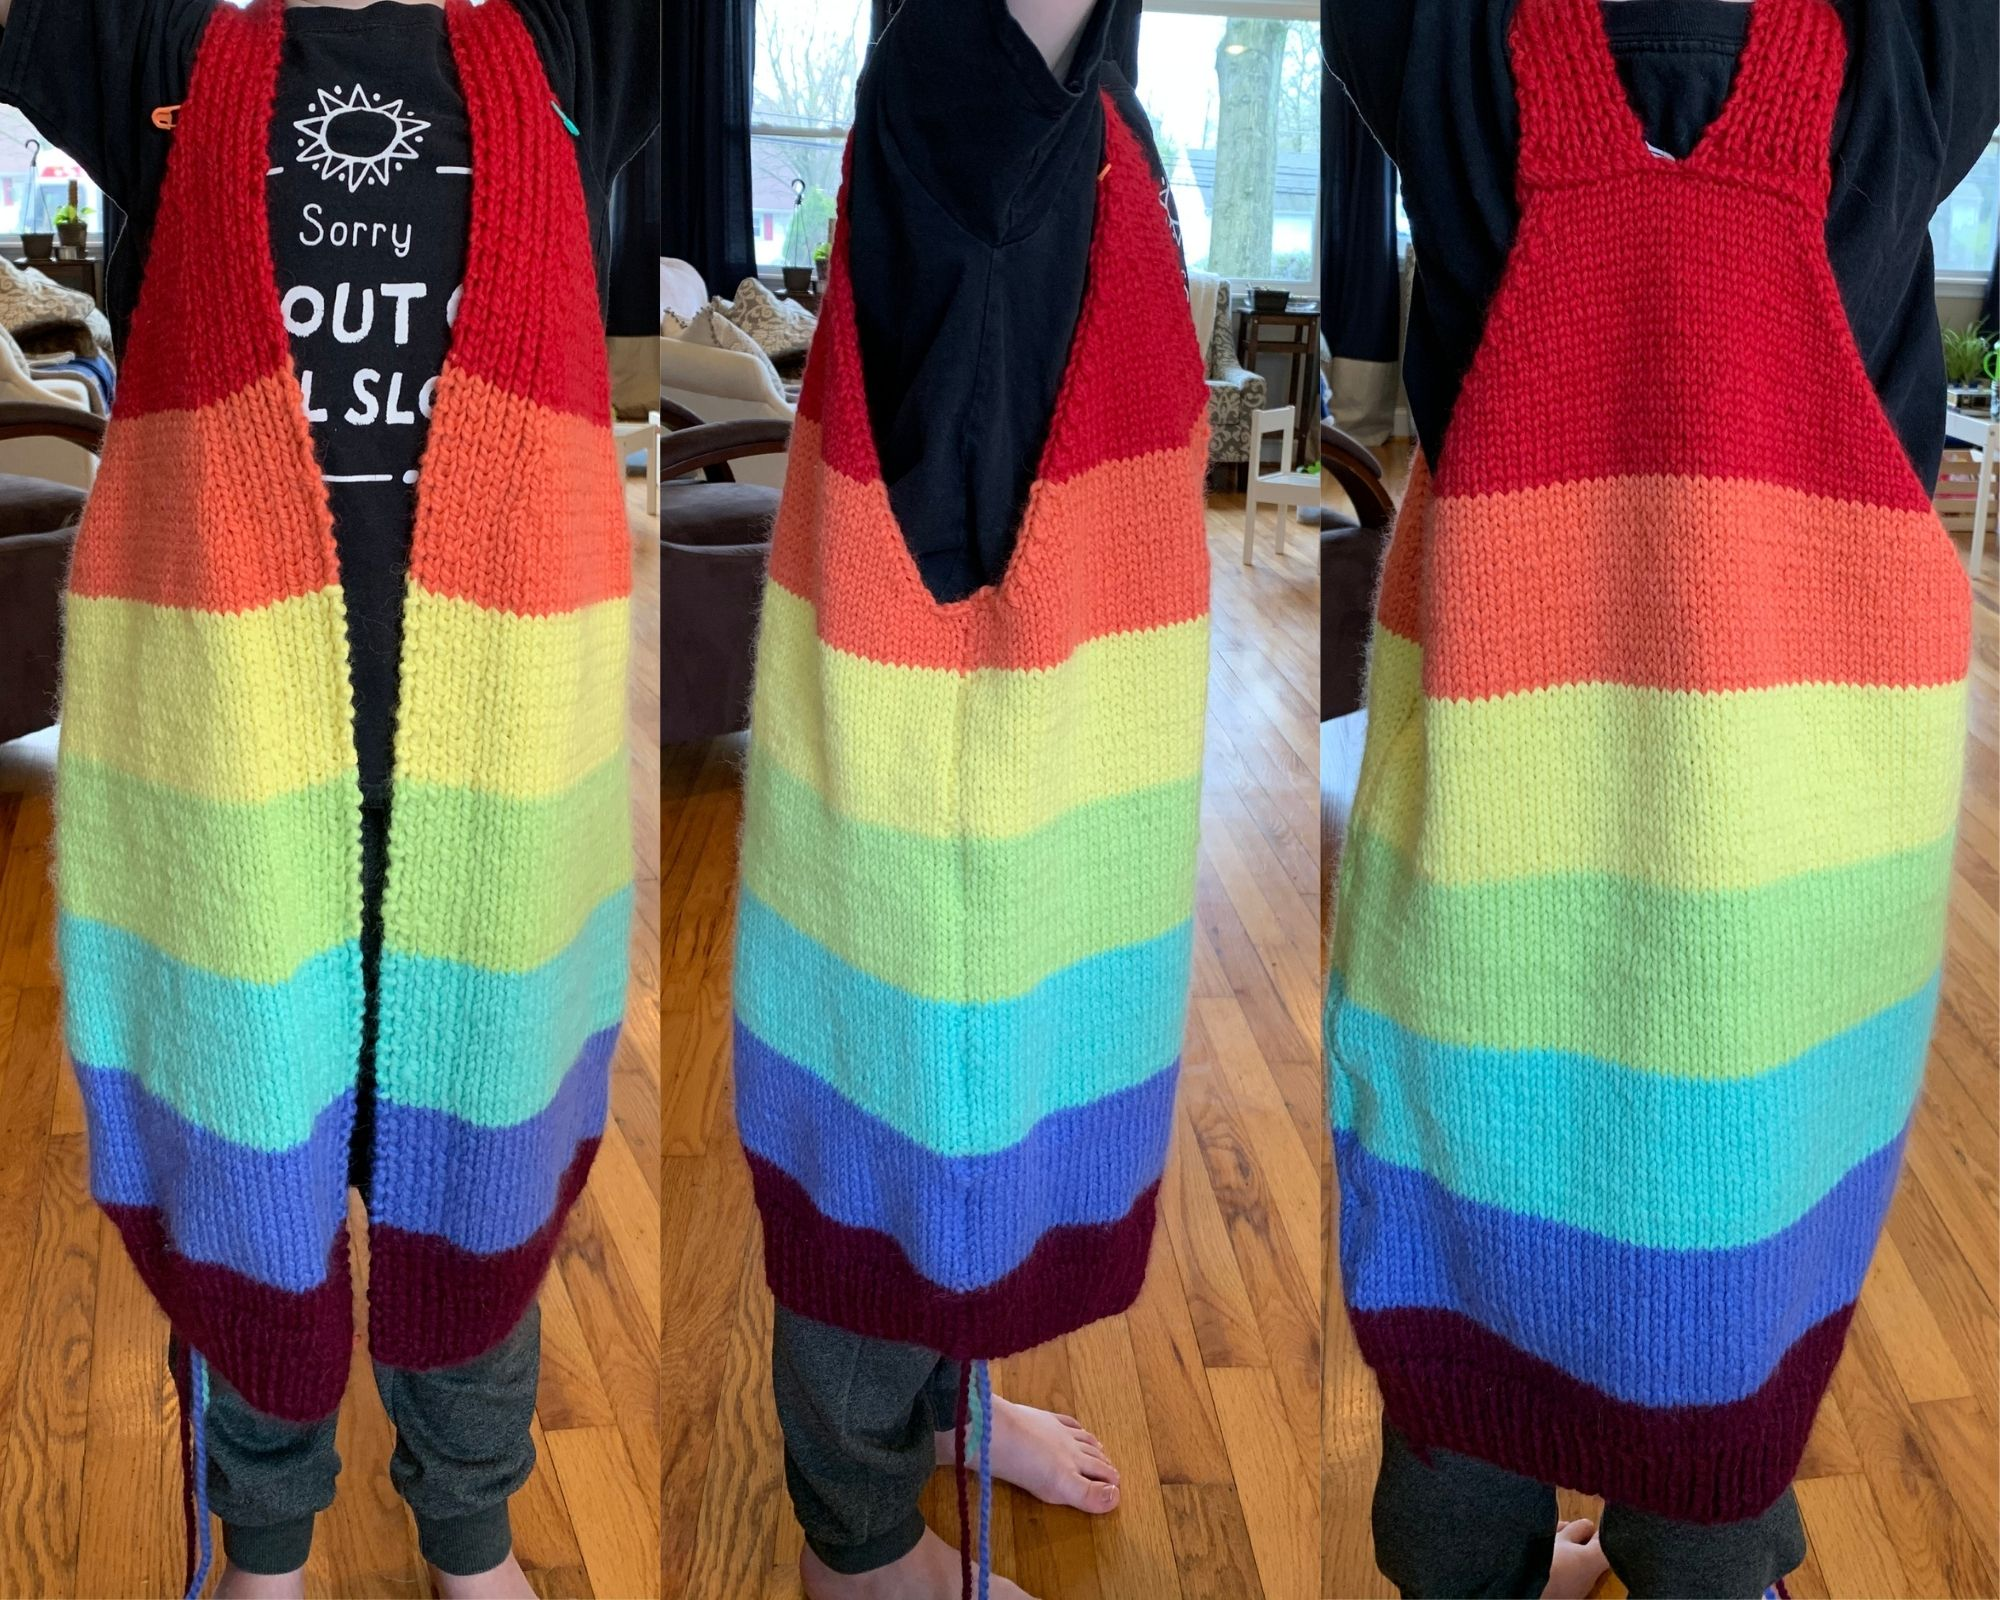 Three images are lined up next to each other of a knitted garment being worn.  It looks like a vest in rainbow stripes, as there are no sleeves attached.  The first image in from the front, middle image from the side, and last image on the left is the back.